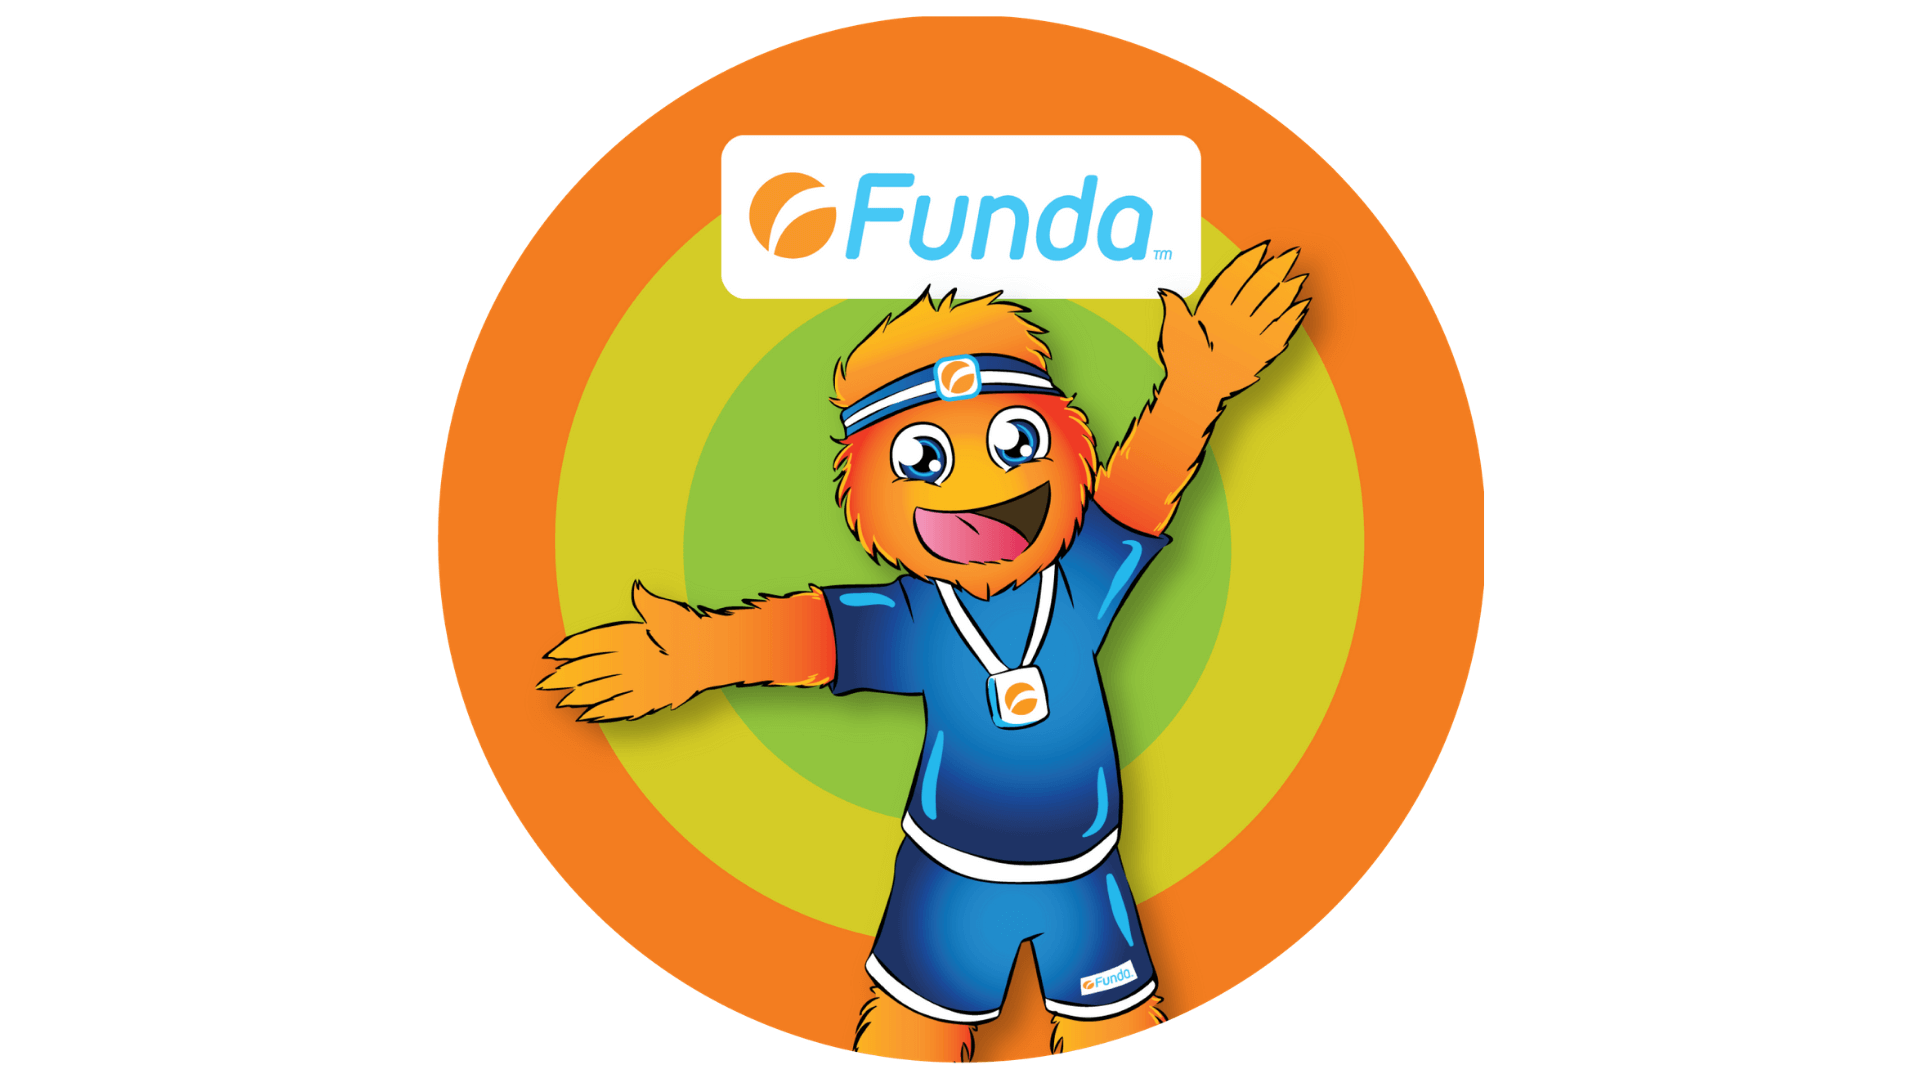 FUNDA Primary School PE, Holiday Camps & Childcare Lancashire